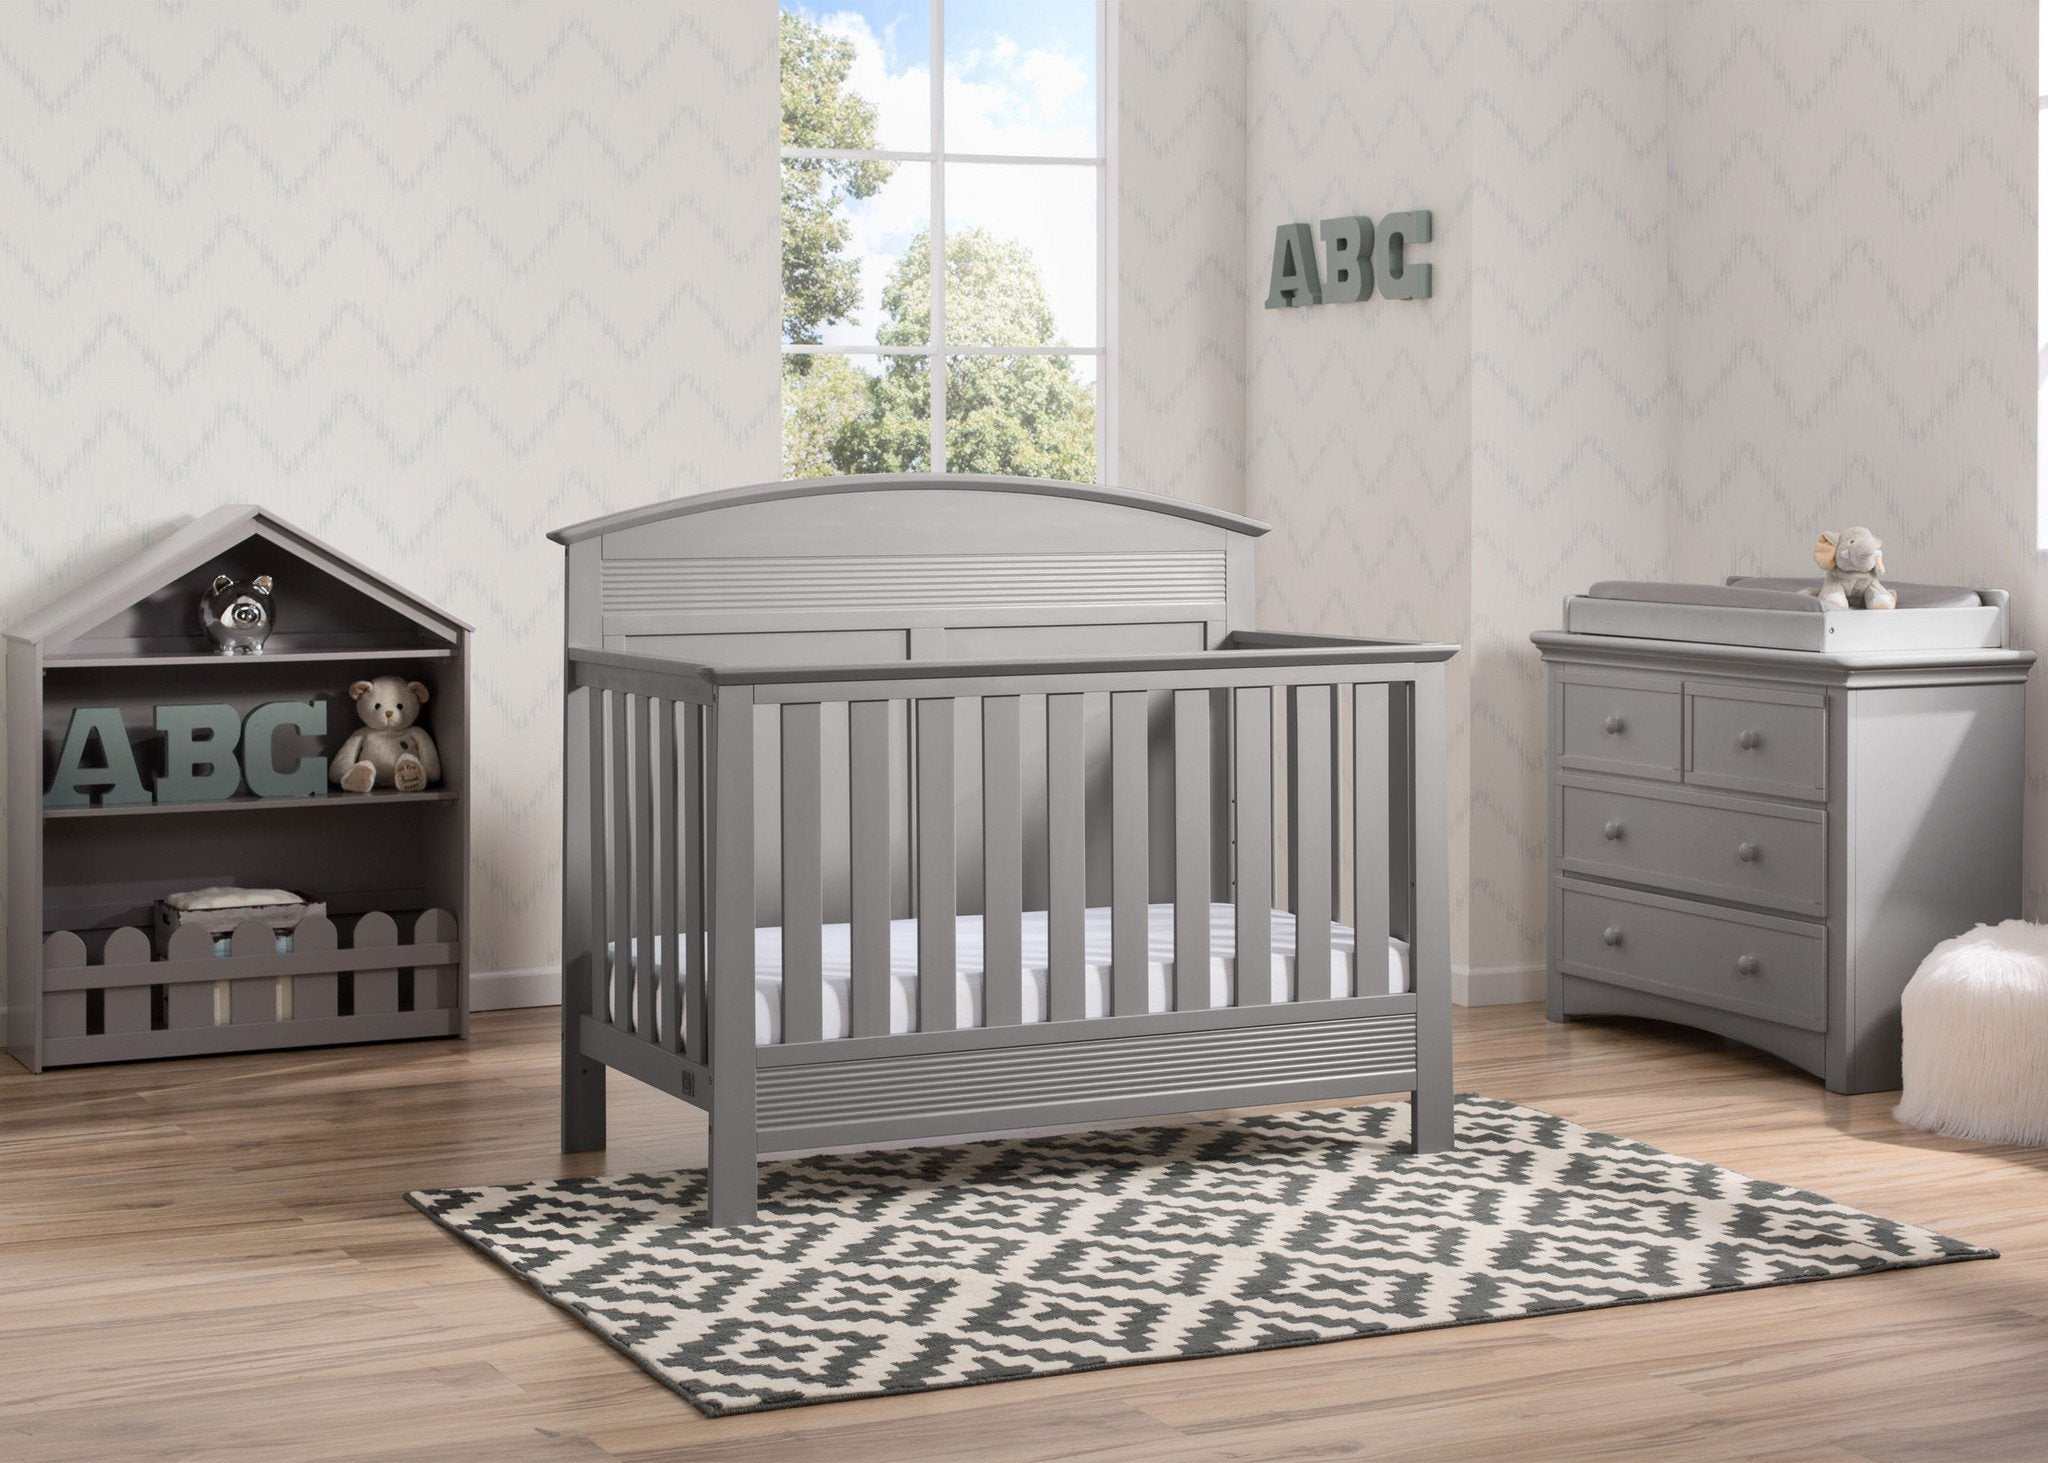 Serta Grey (026) Ashland 4-in-1 Convertible Crib, Room View a1a